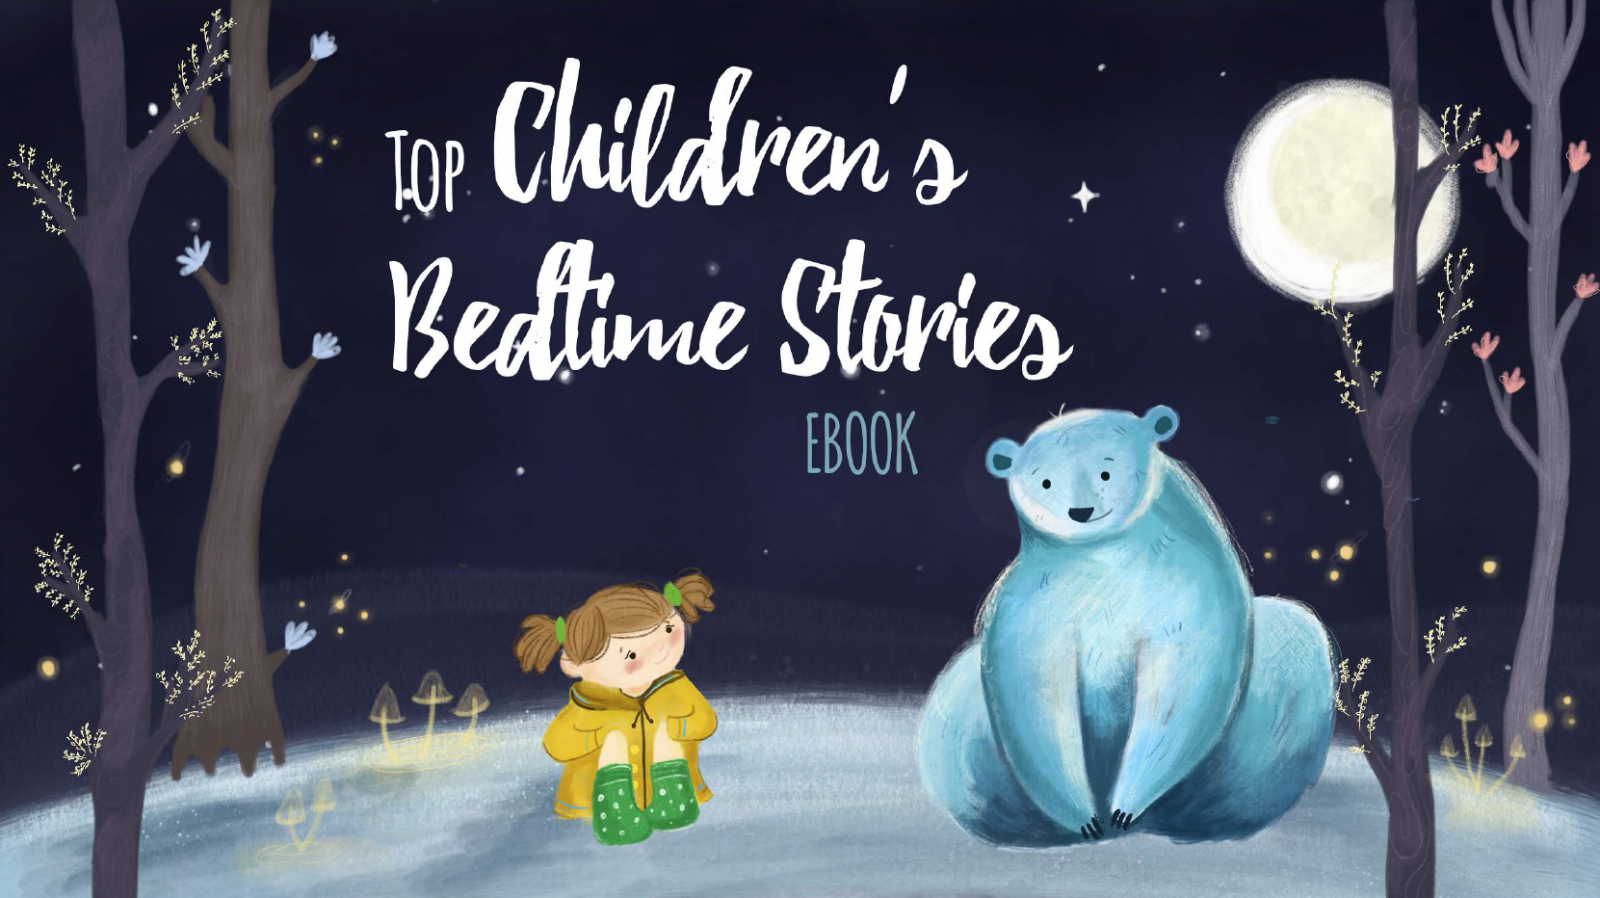 childrens bedtime stories ebook cover